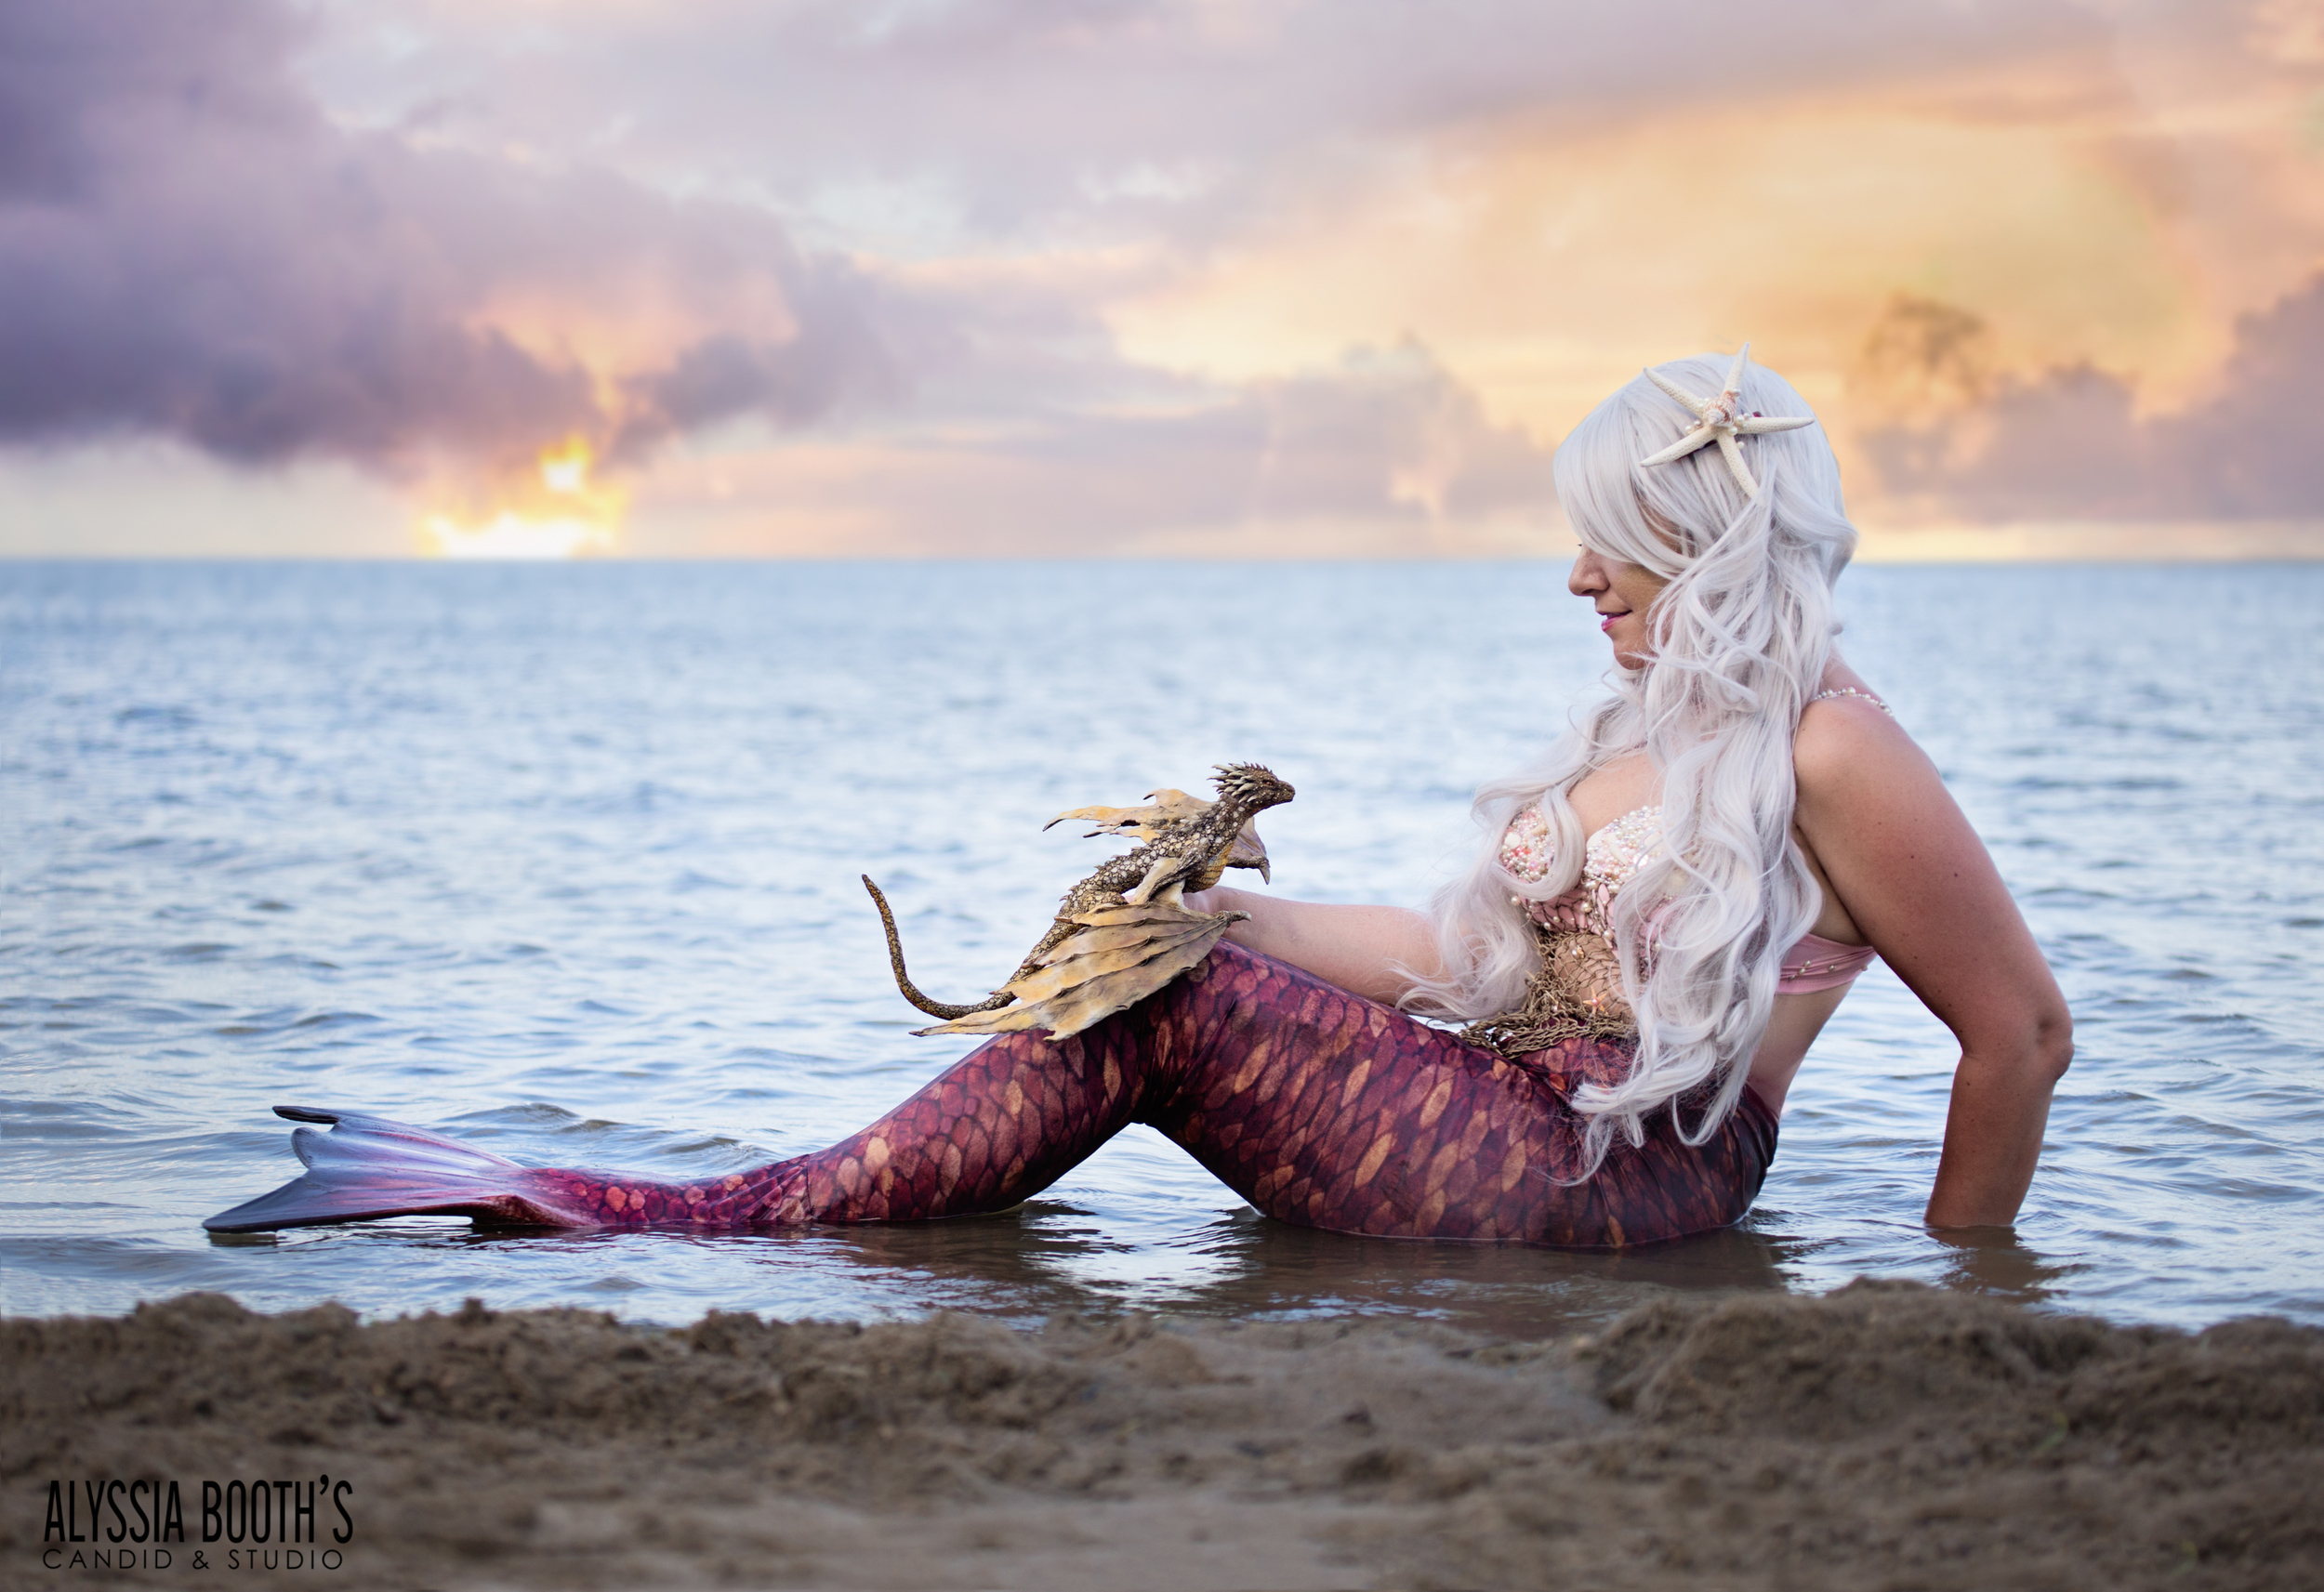 Mermaid And The Hatchling | Alyssia Booth's Candid & Studio | Michigan Photographer | Fantasy